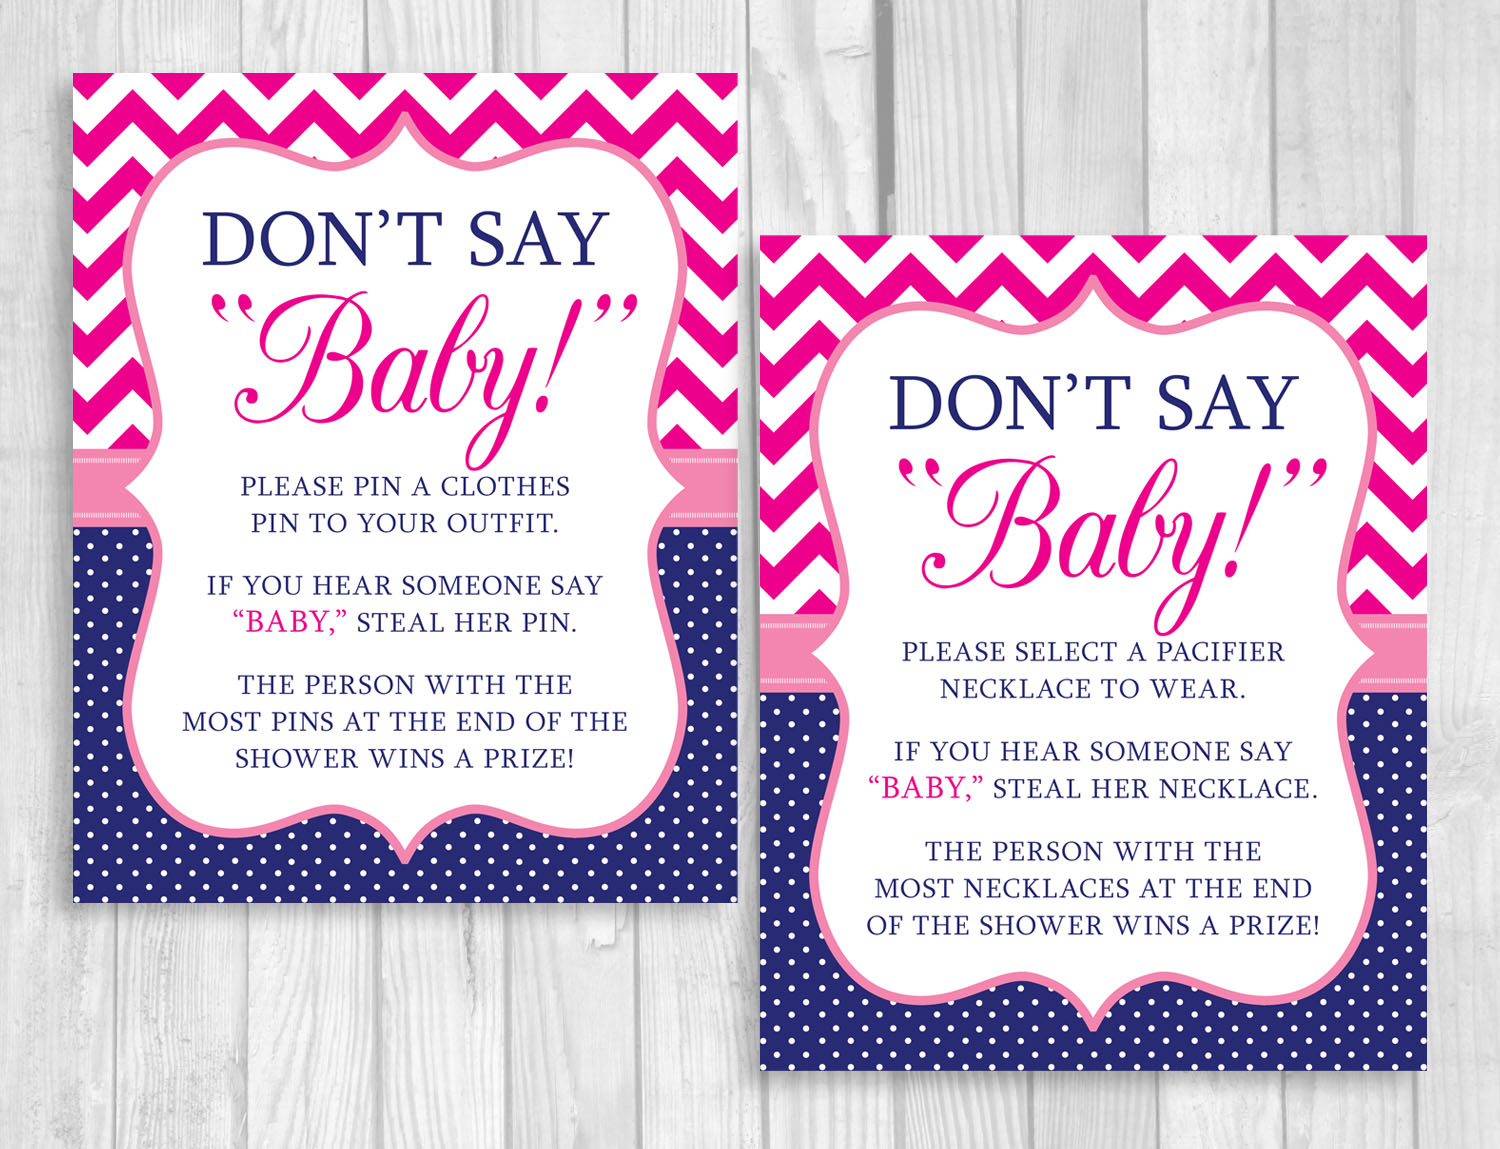 Printable Donu0027t Say Baby! 8x10 Clothes Pin Or Pacifier Necklace Baby Shower  Game Hot, Pink Chevron U0026 Navy Blue Polka Dots